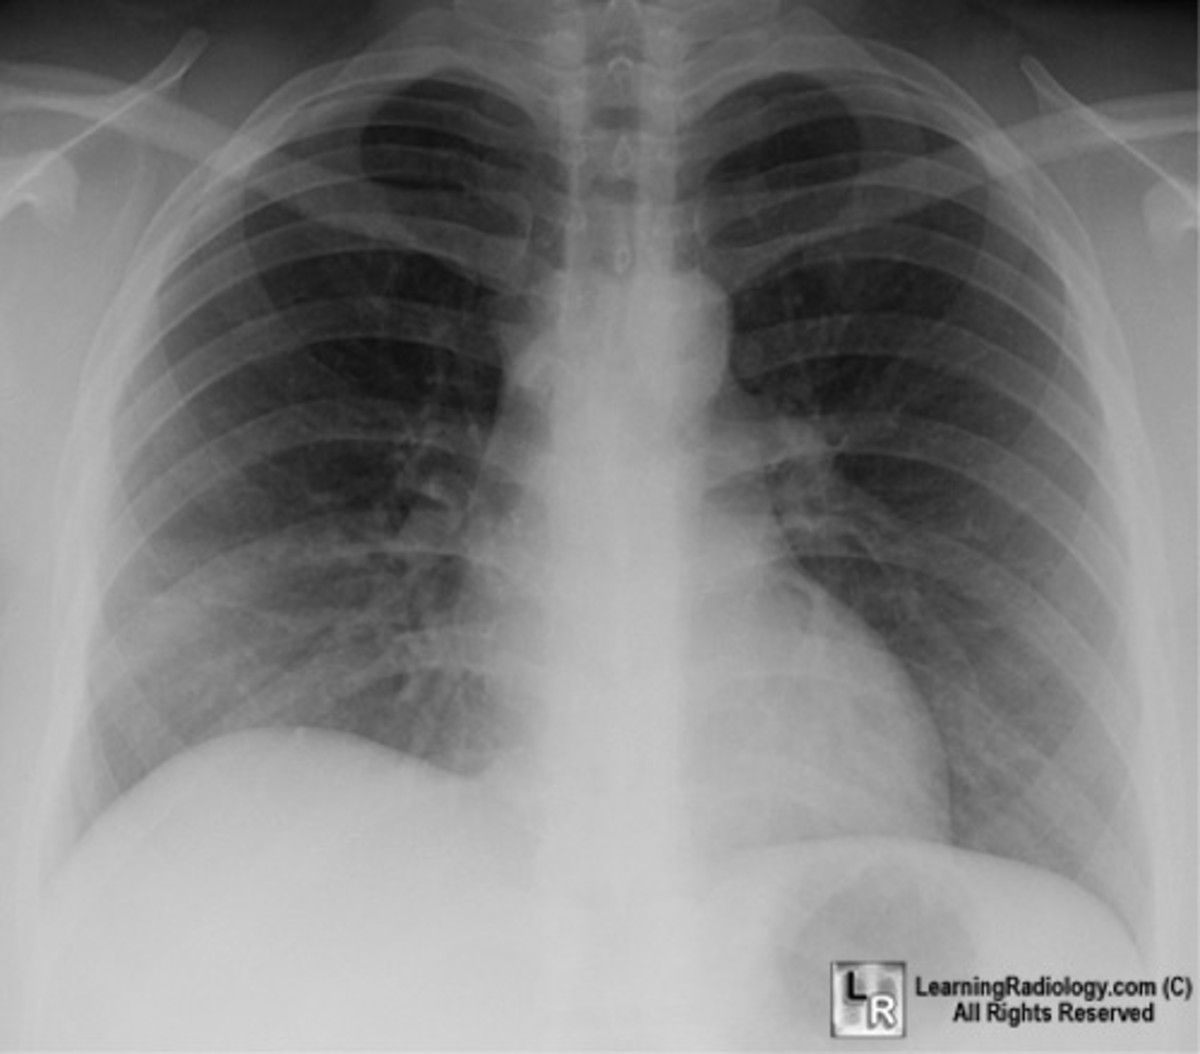 The blocked, contracted lung may develop pneumonia that fails to resolve completely and leads to chronic inflammation, scarring, and bronchiectasis.